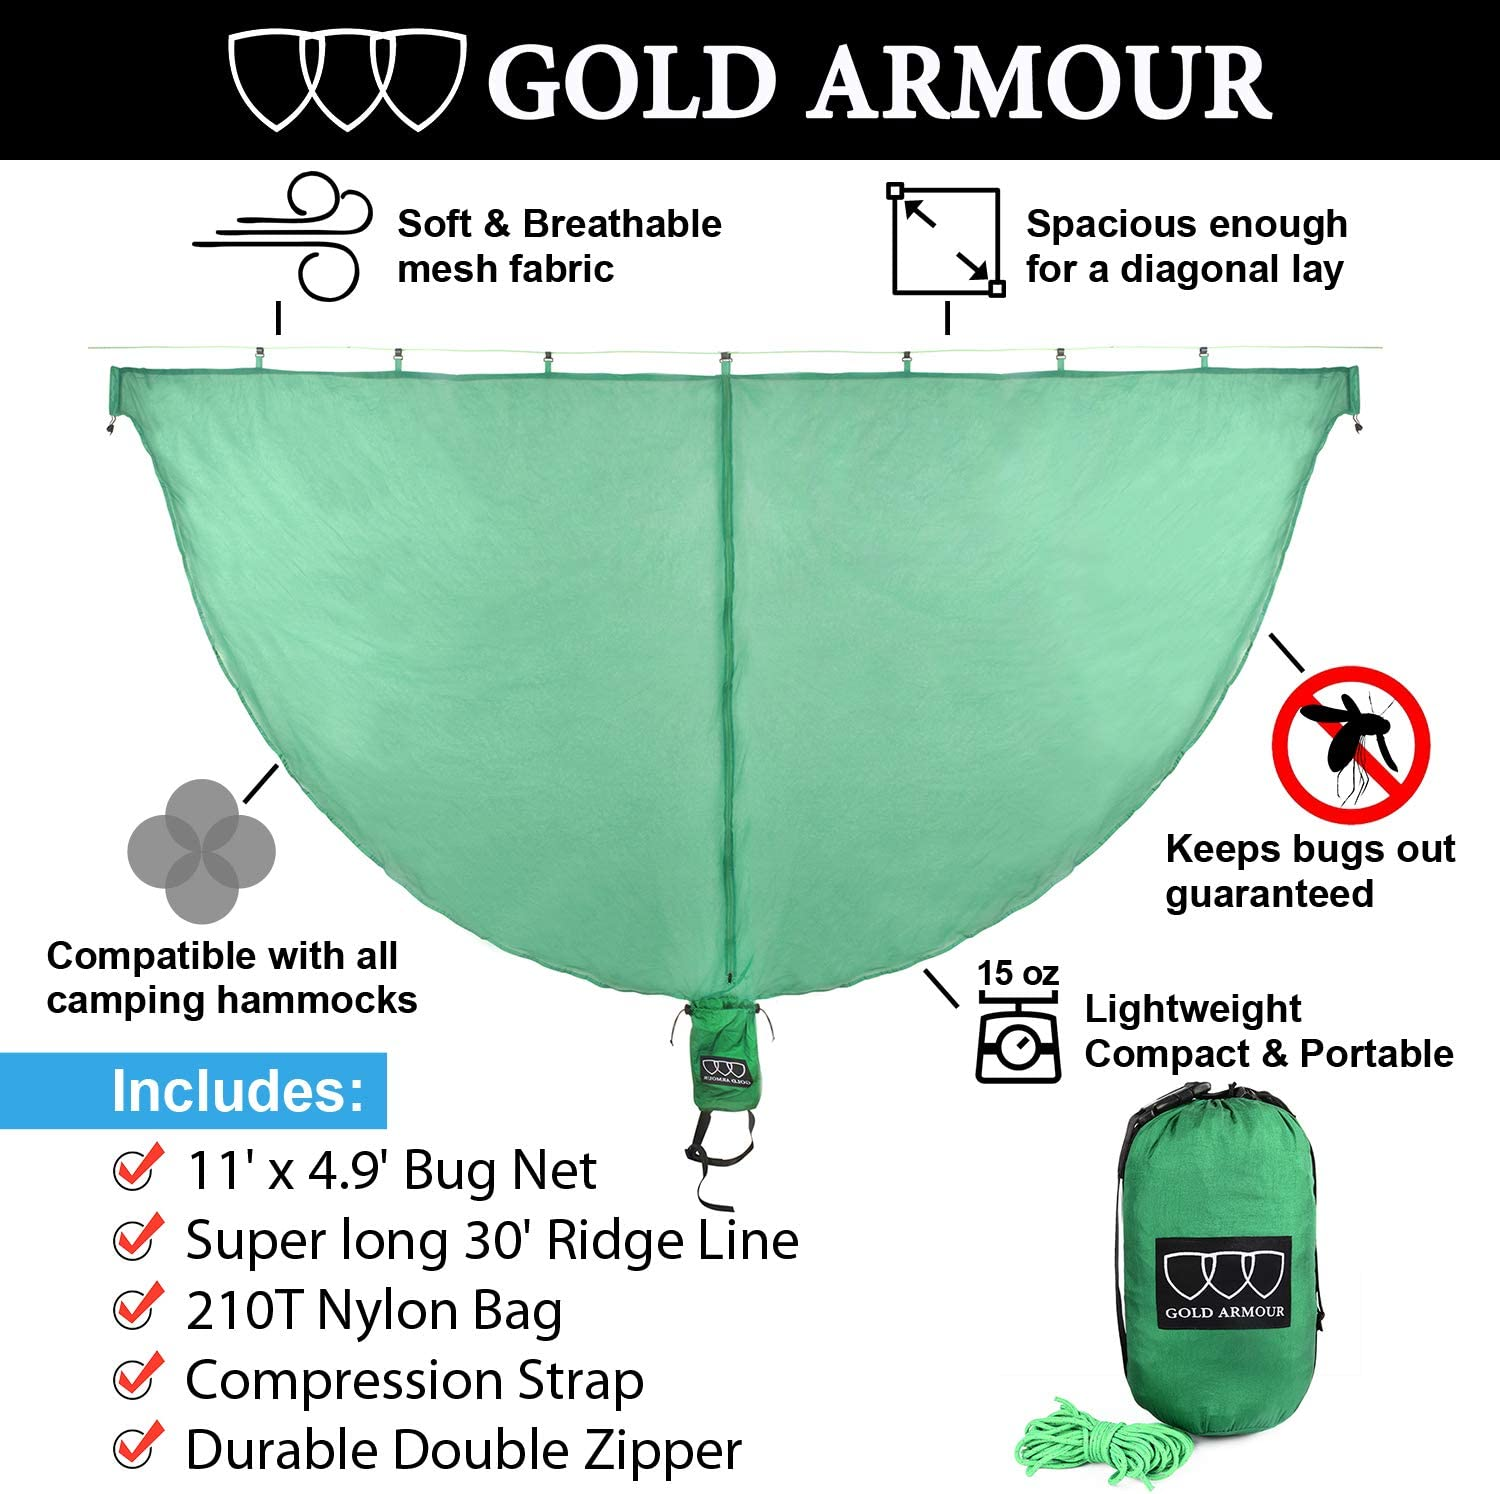 Guardian Mosquito Net for Bugs No See Um and Insects Perfect Accessory for Your Hammocks Best Premium Quality Mesh Netting Gold Armour Hammock Bug Net